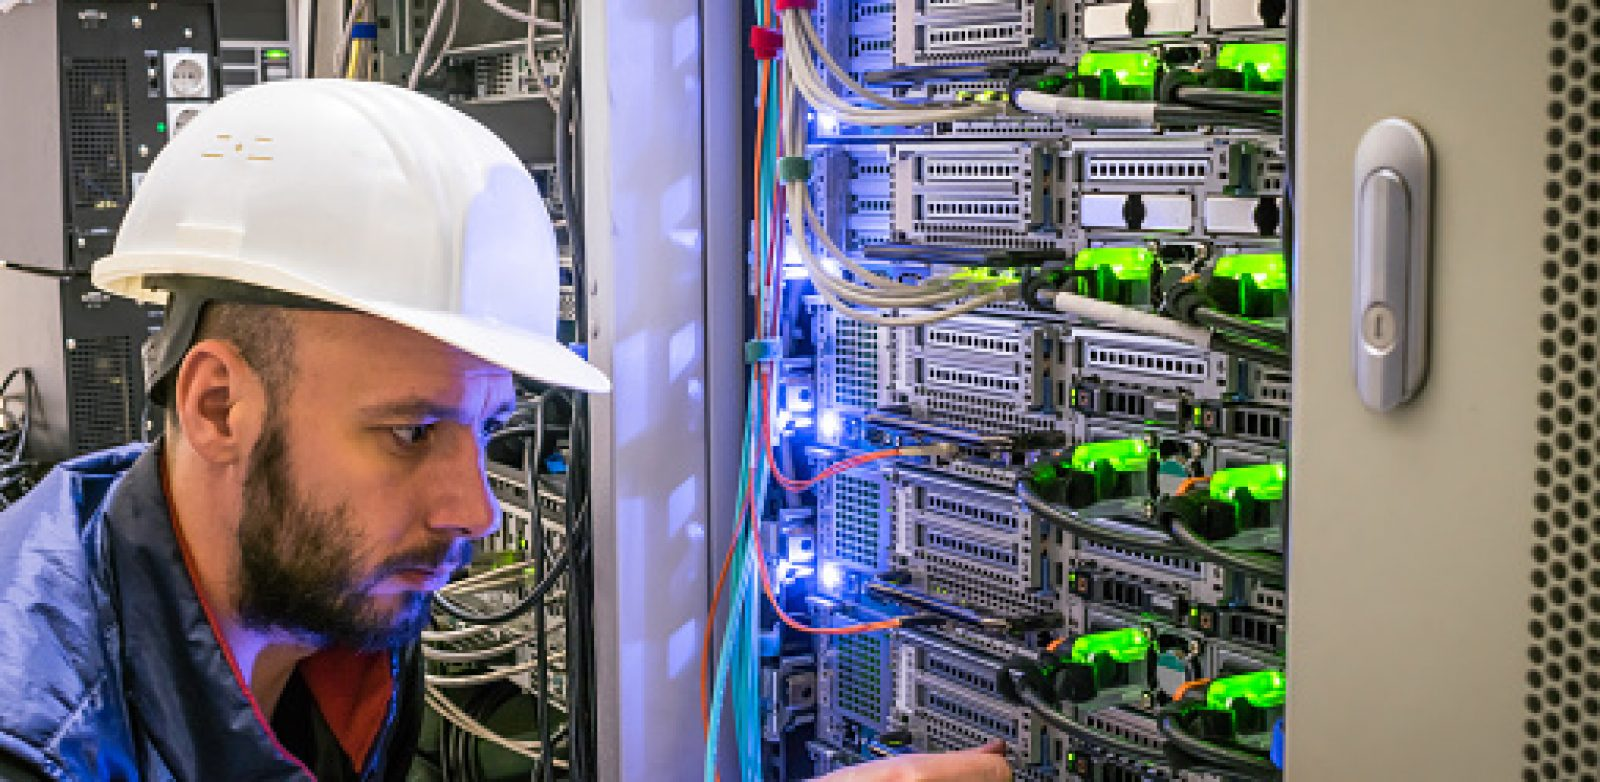 A specialist connects the wires in the server room of the data center. A man works with telecommunications. The technician switches the Internet cable of the powerful routers